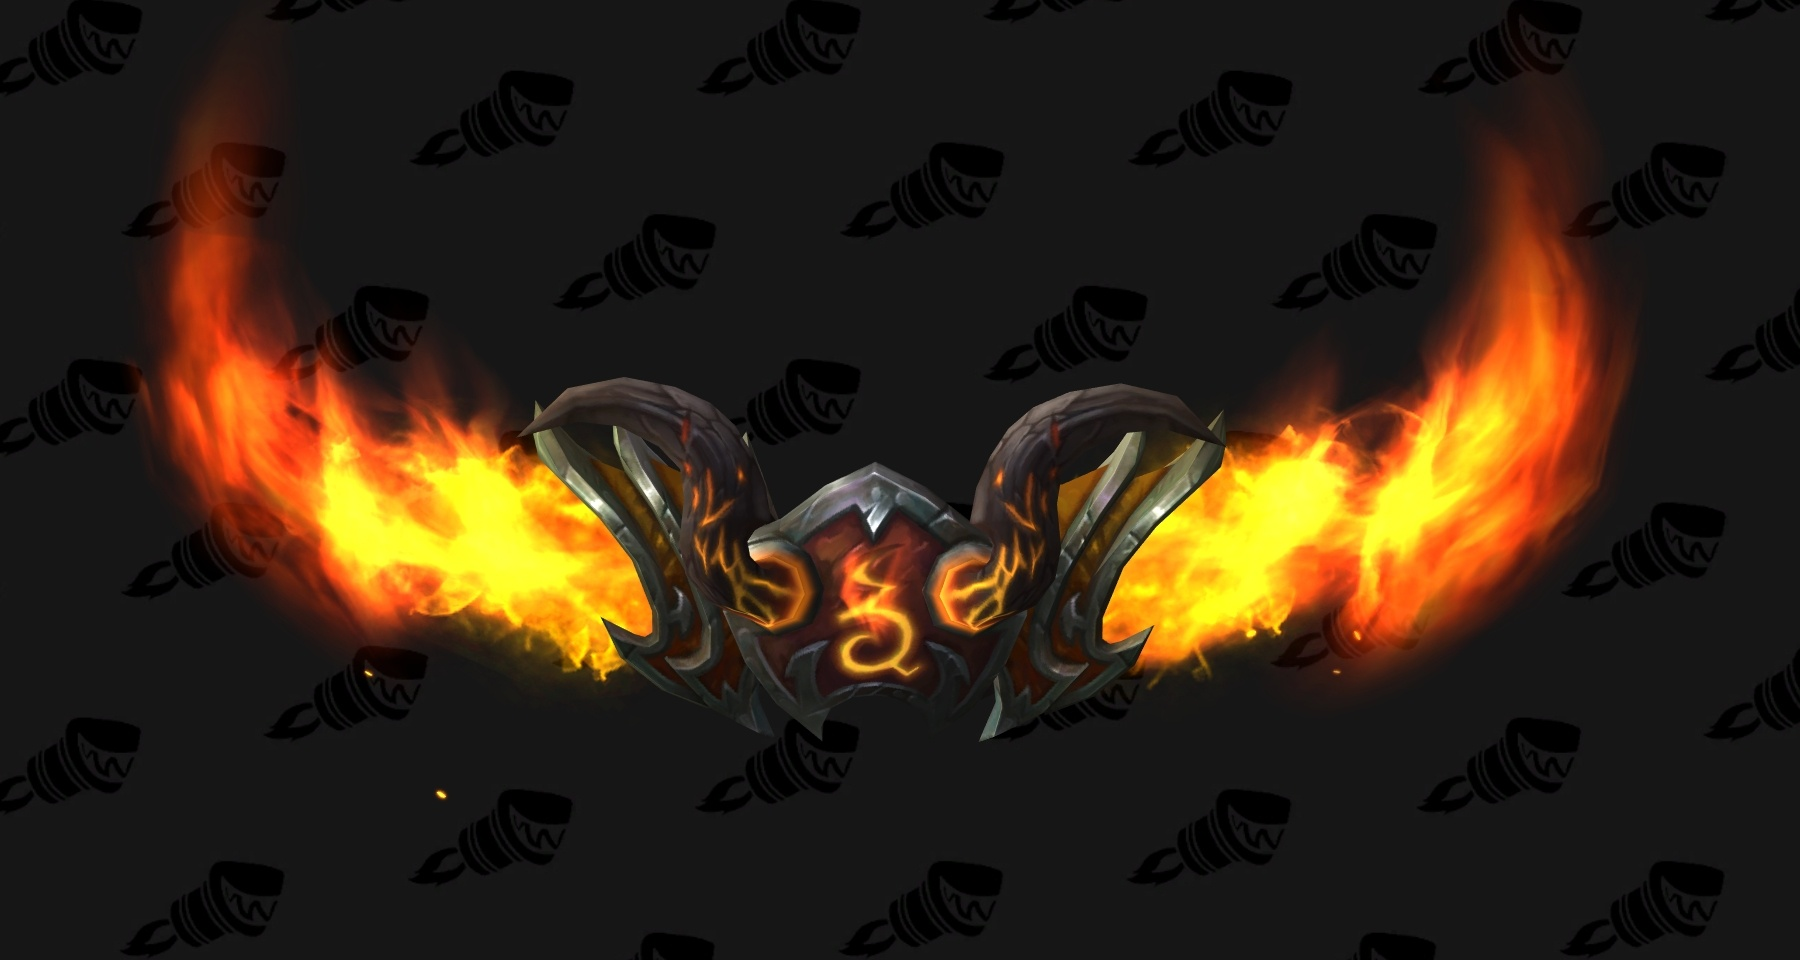 Havoc Demon Hunter Artifact Weapon: Twinblades of the Deceiver